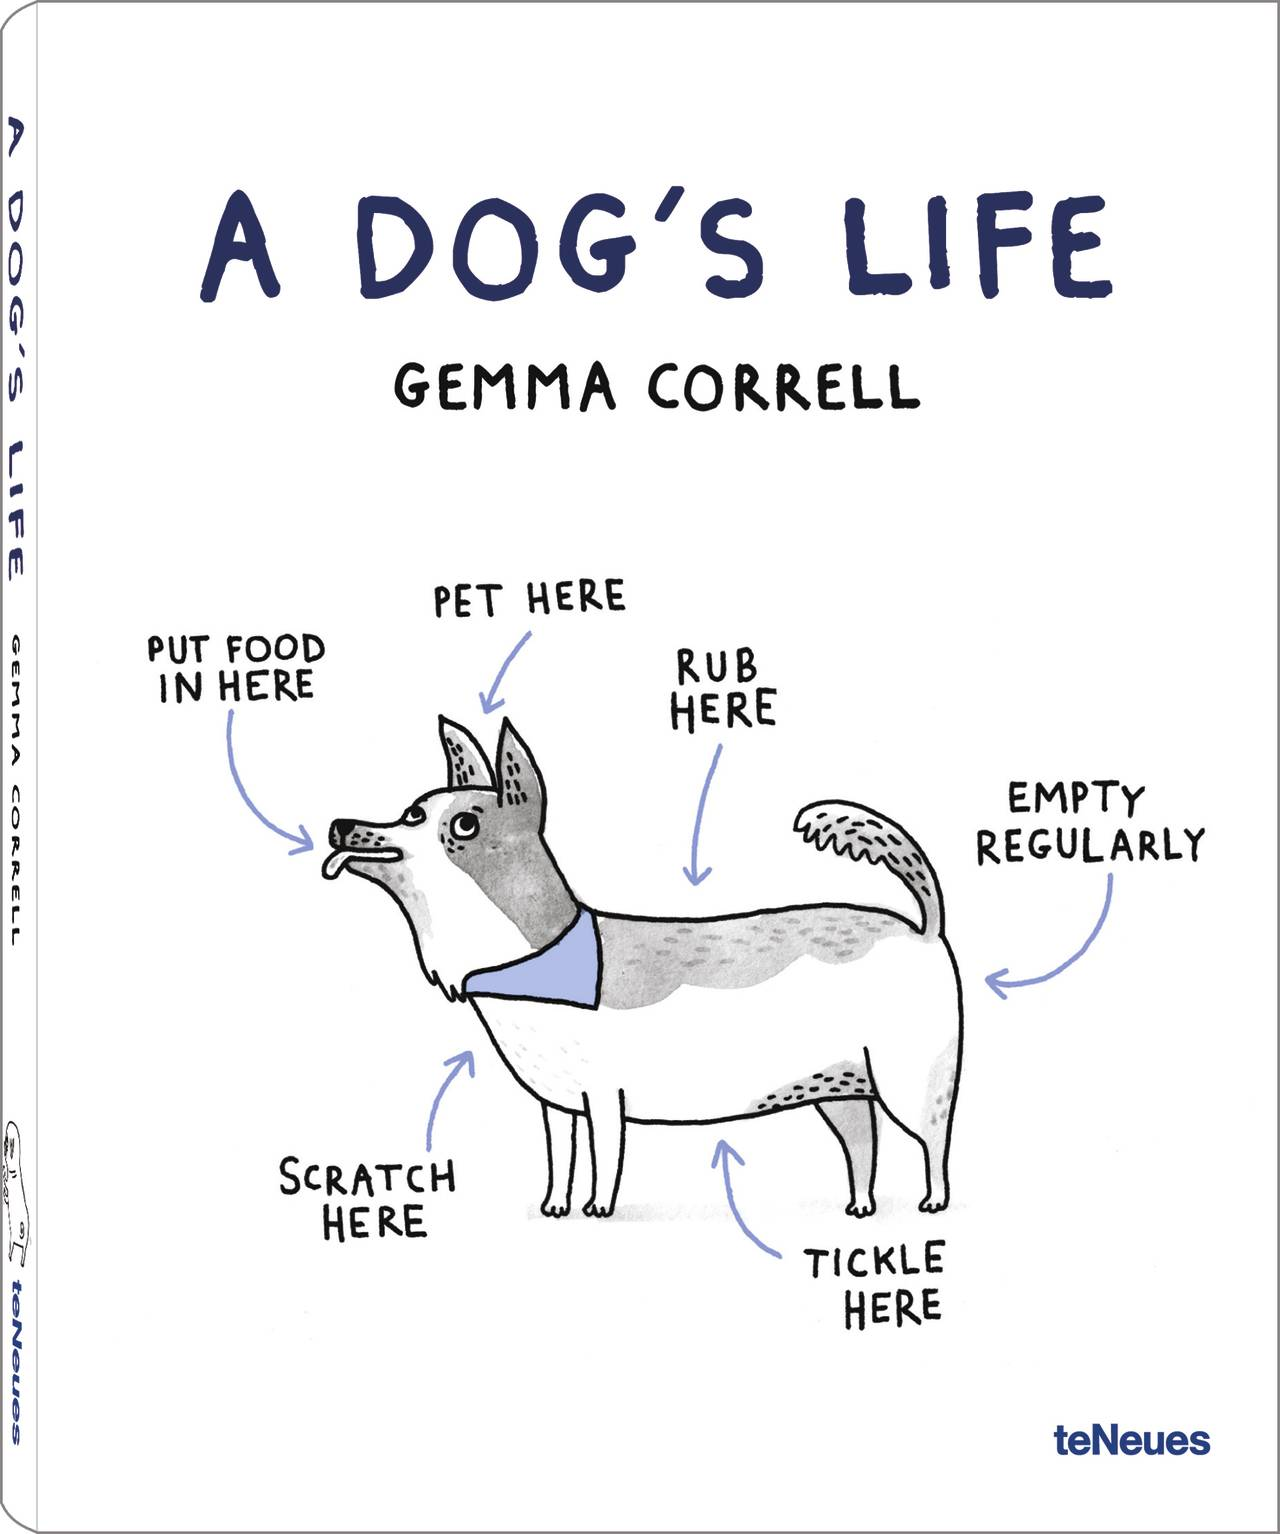 © A Dog's Life by Gemma Correll, published by teNeues, www.teneues.com. Photo © 2013 Gemma Correll